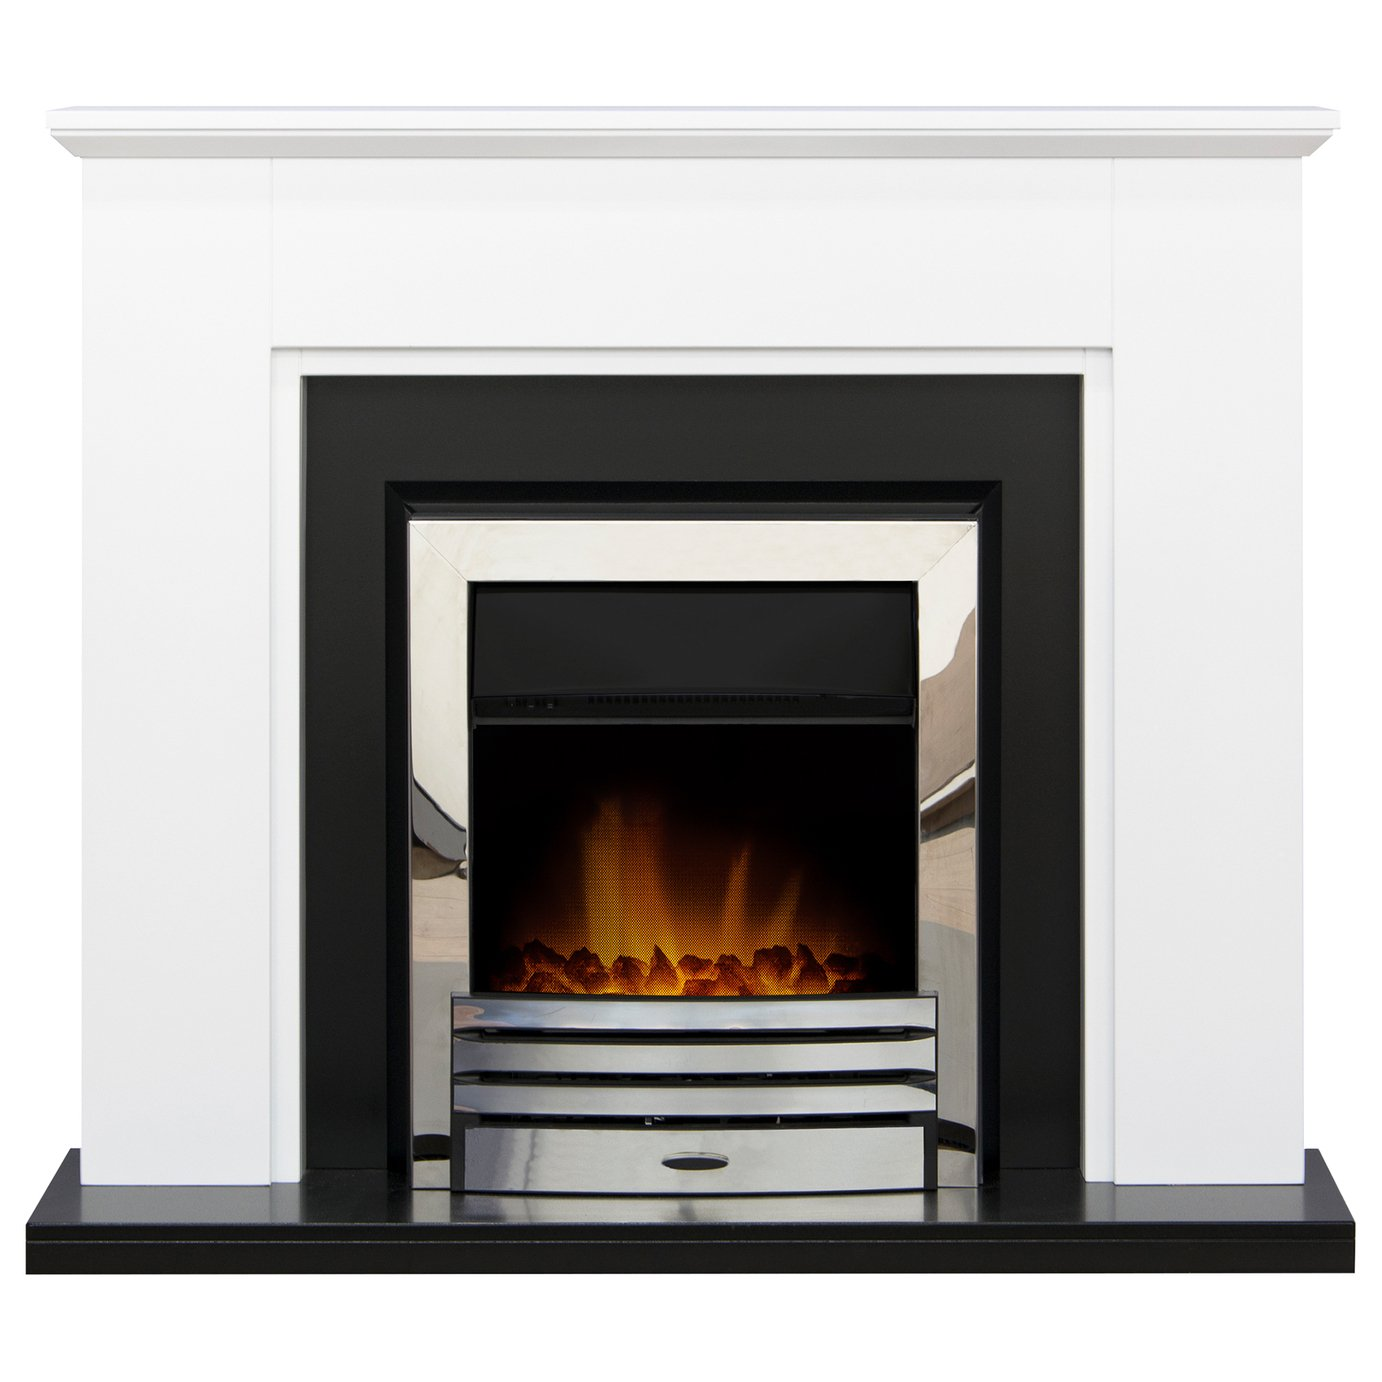 Adam Greenwich Surround with Eclipse 2kW Electric Fire Suite